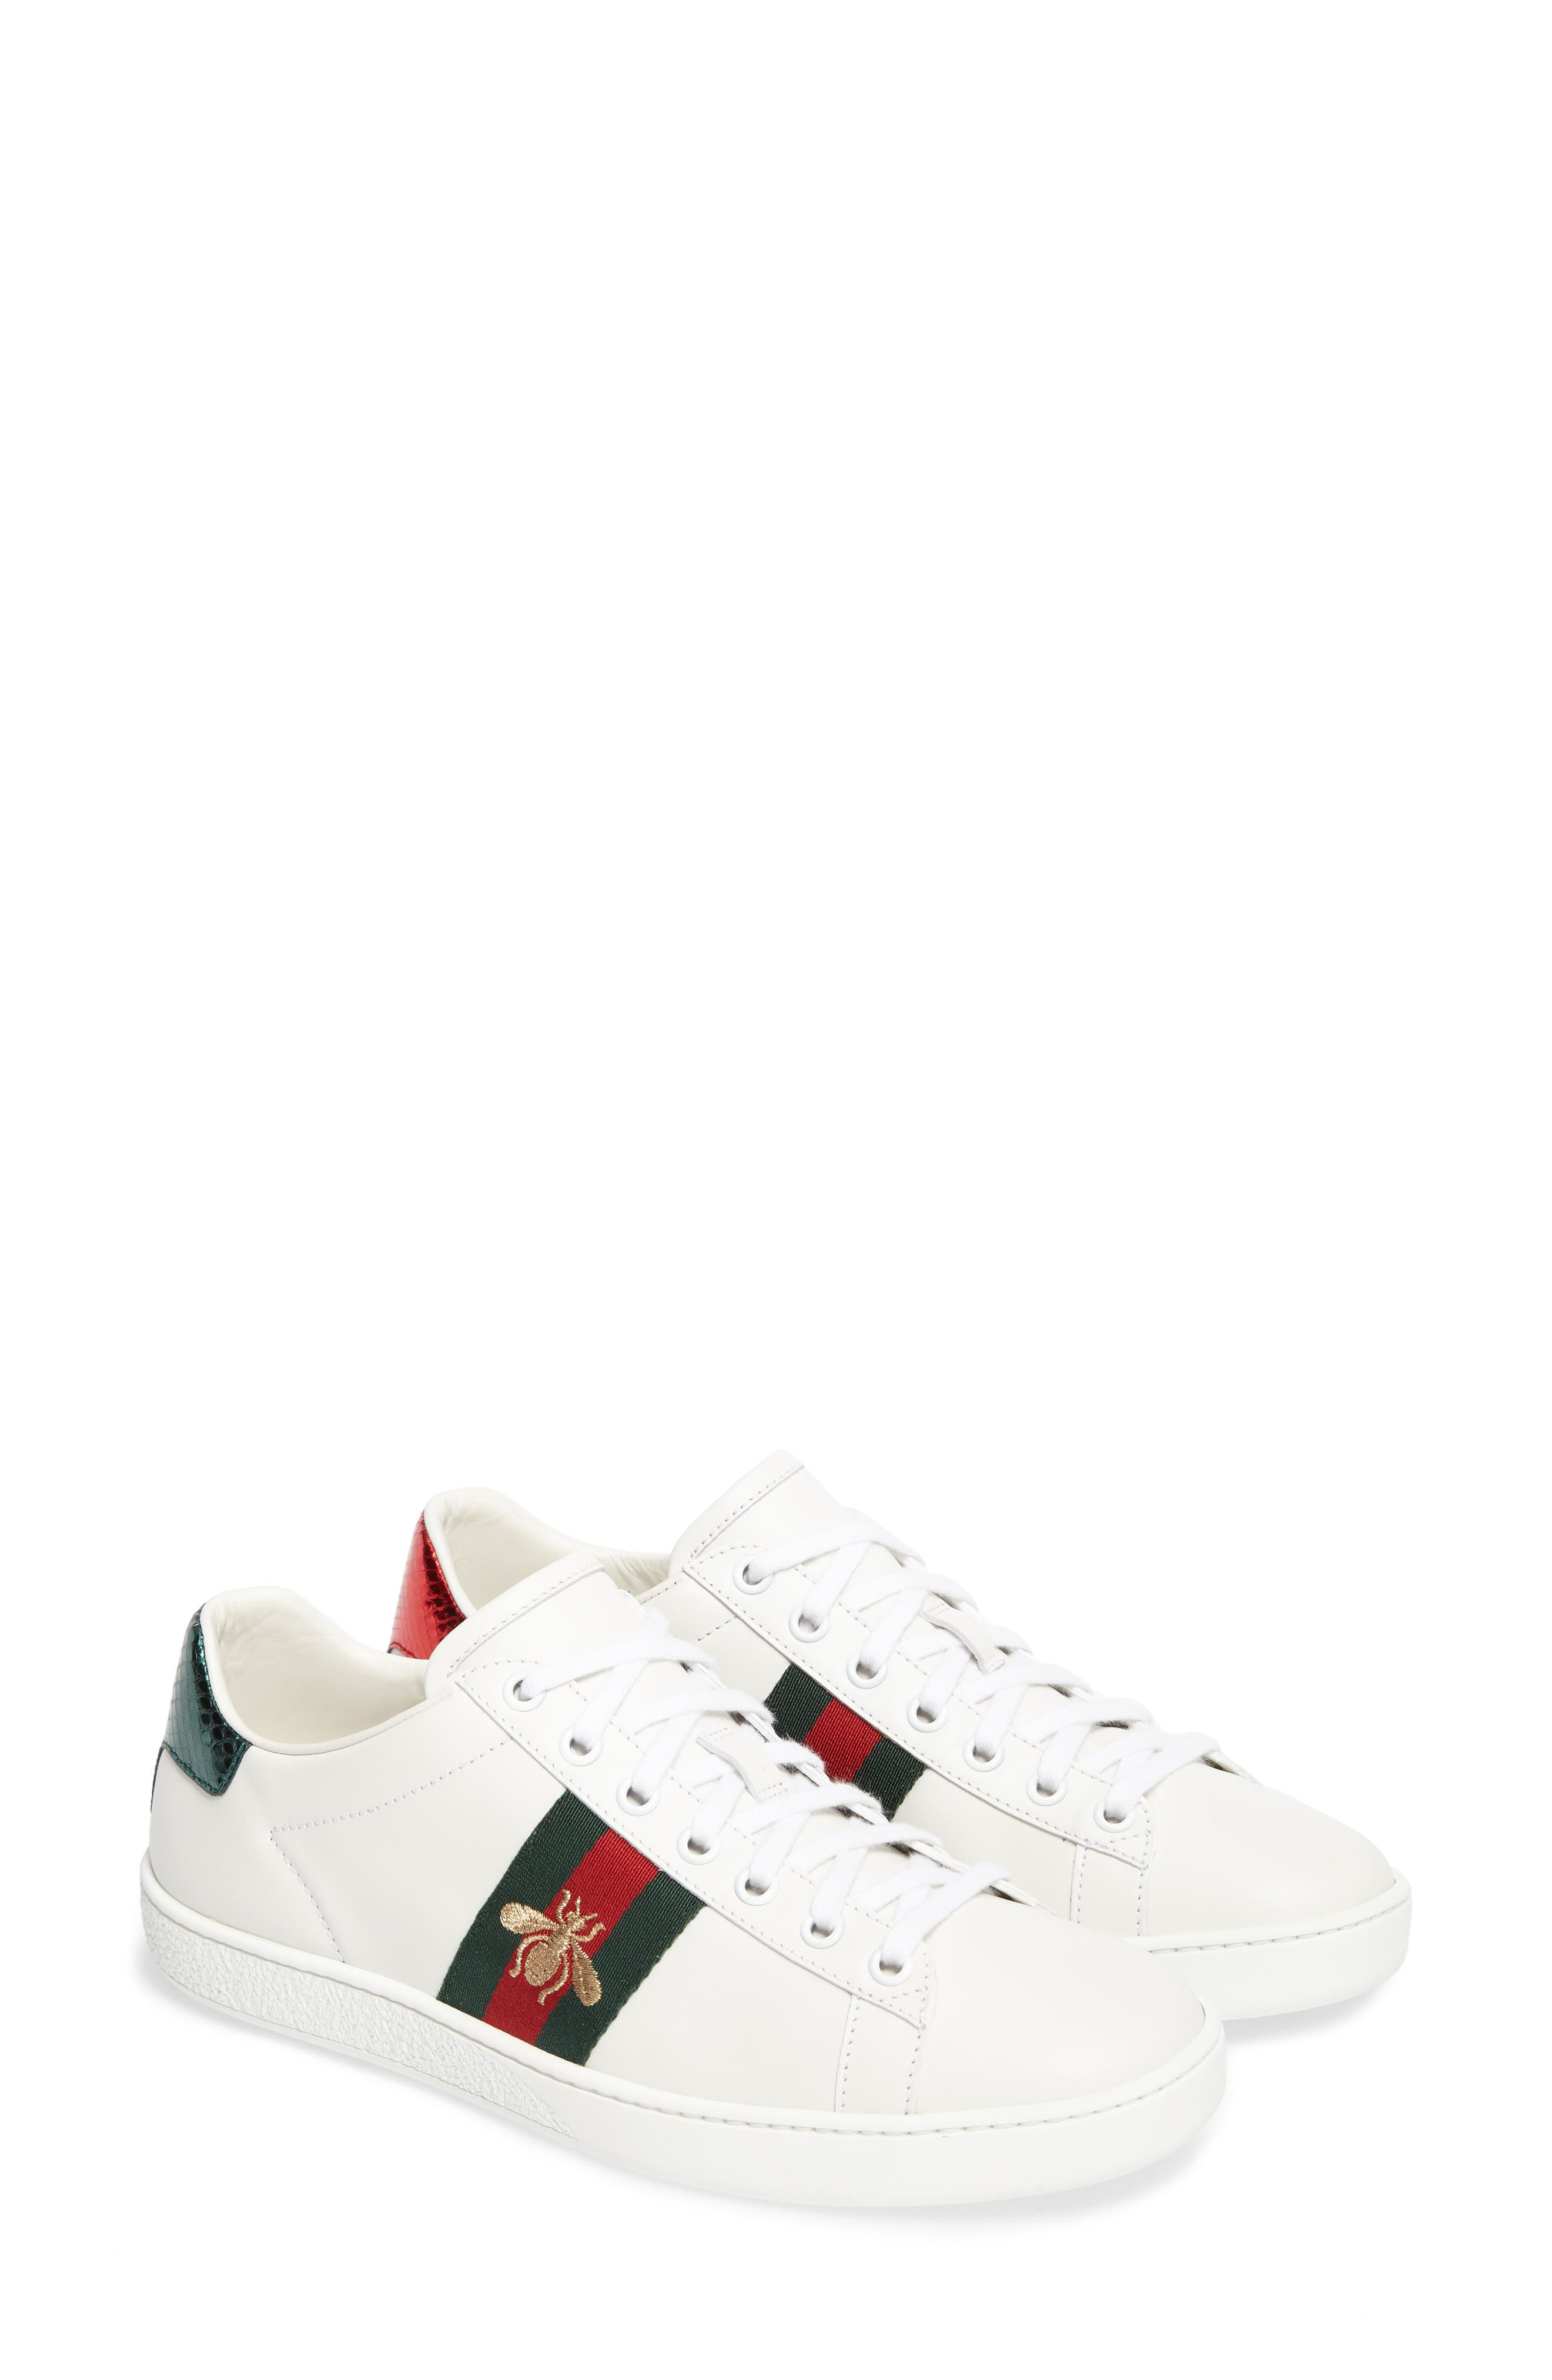 Alternate Image 1 Selected - Gucci New Ace Sneaker (Women)